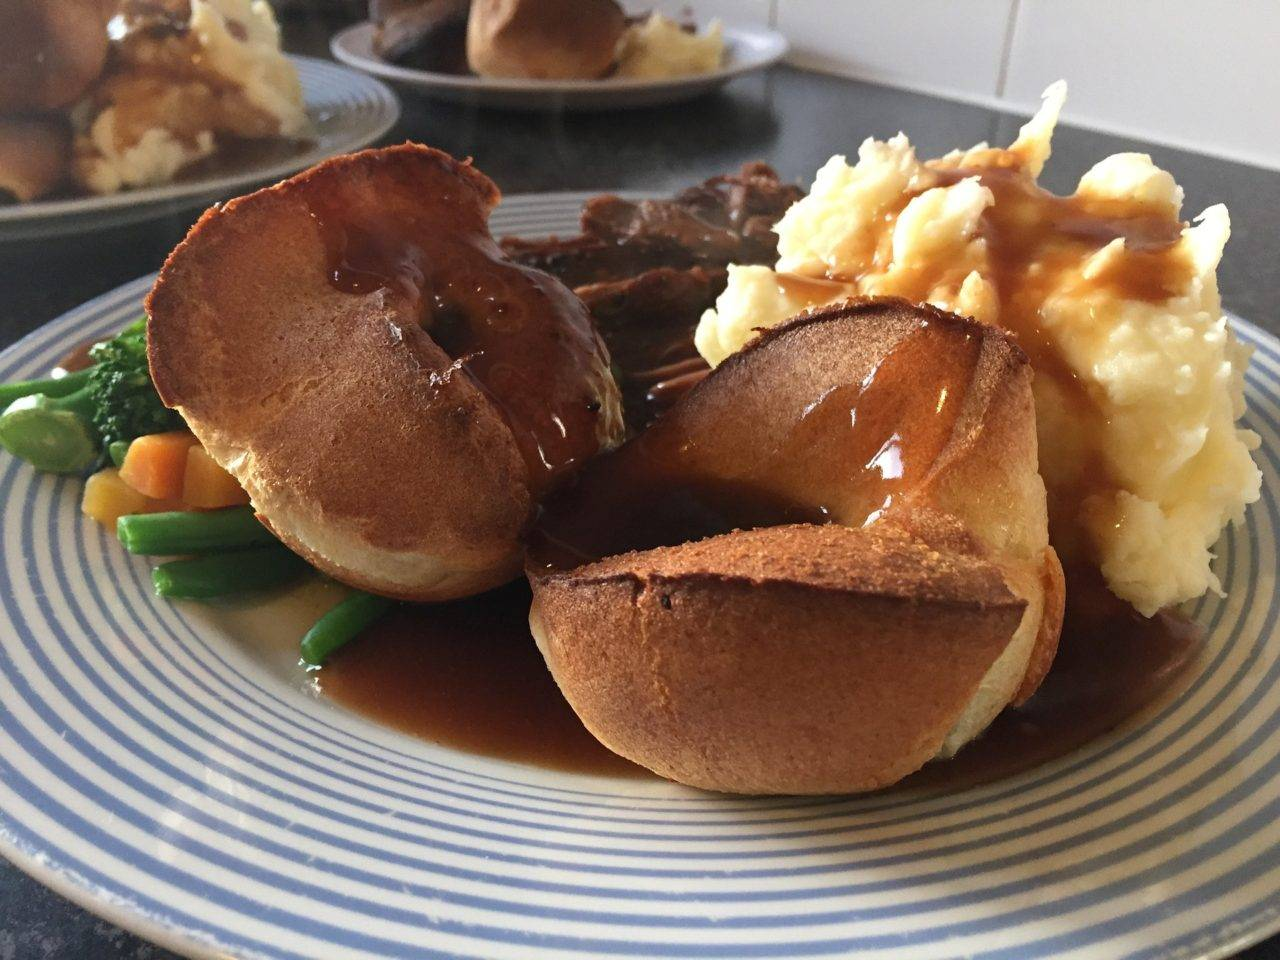 silver-bay-holiday-village-anglesey-roast-dinner-recommendations-1280x960.jpg